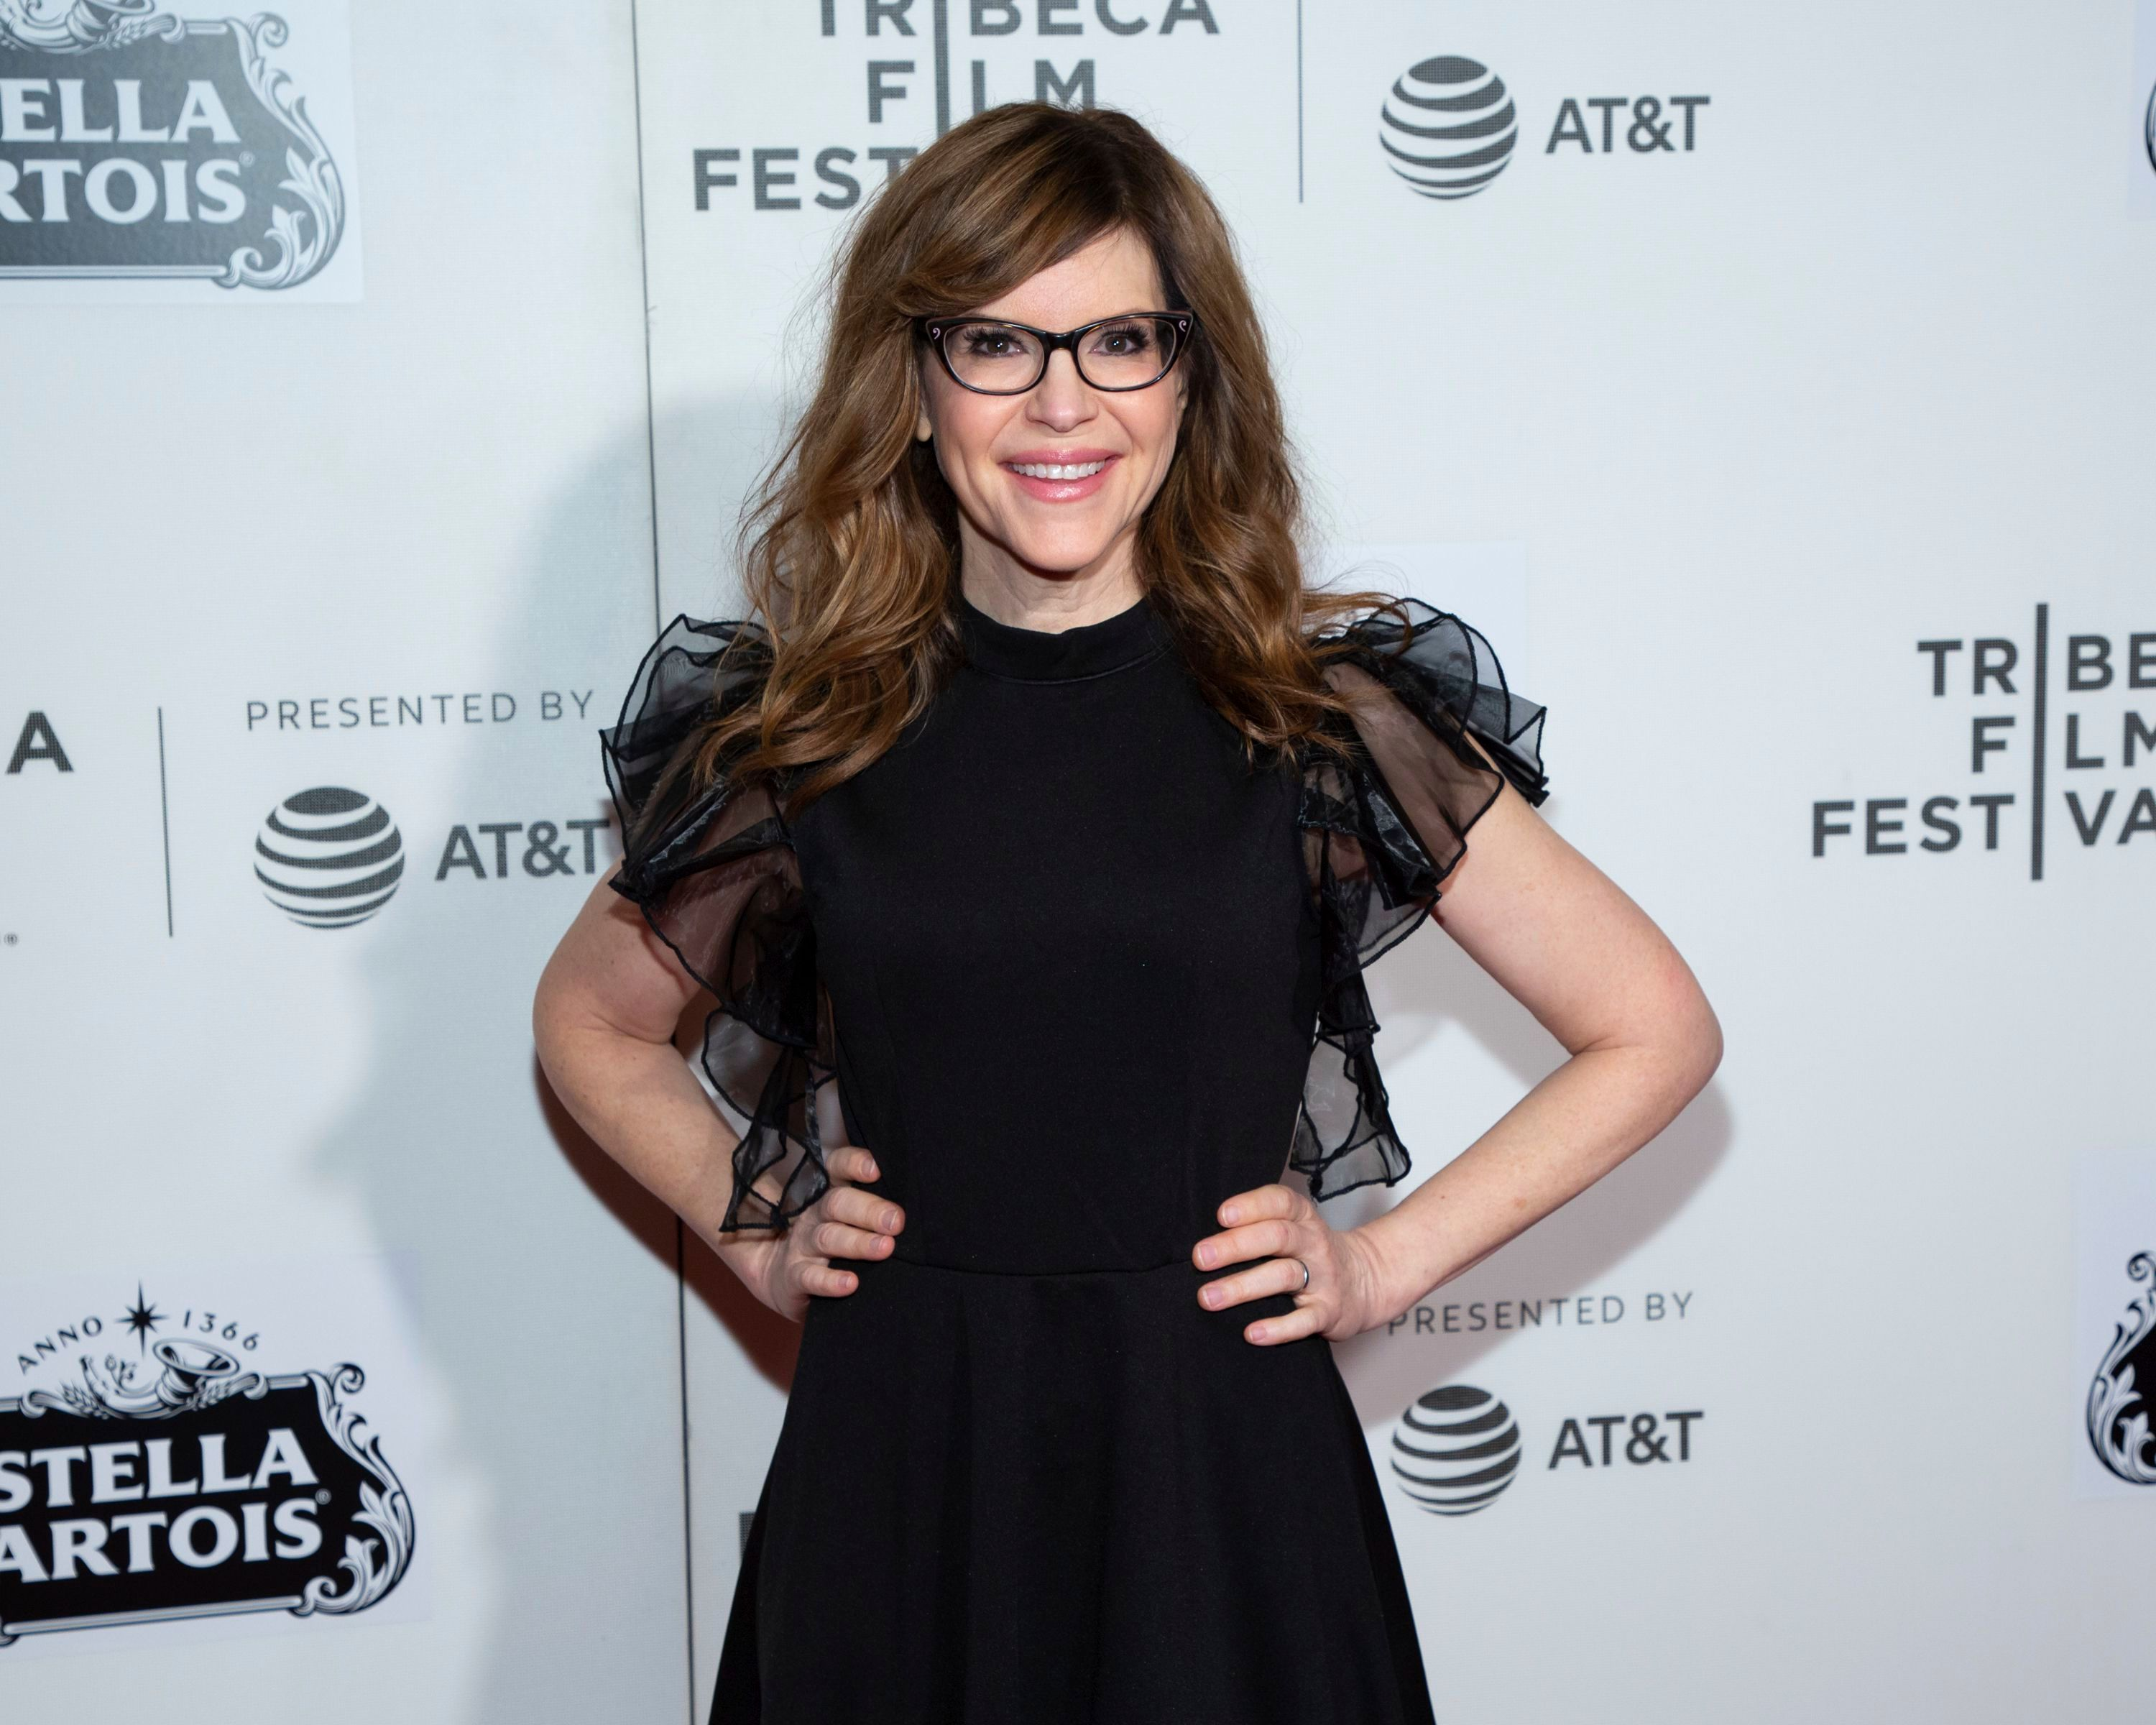 'Reality Bites' Reunion: Lisa Loeb Surprised a 25th Anniversary Panel with a Performance of 'Stay'